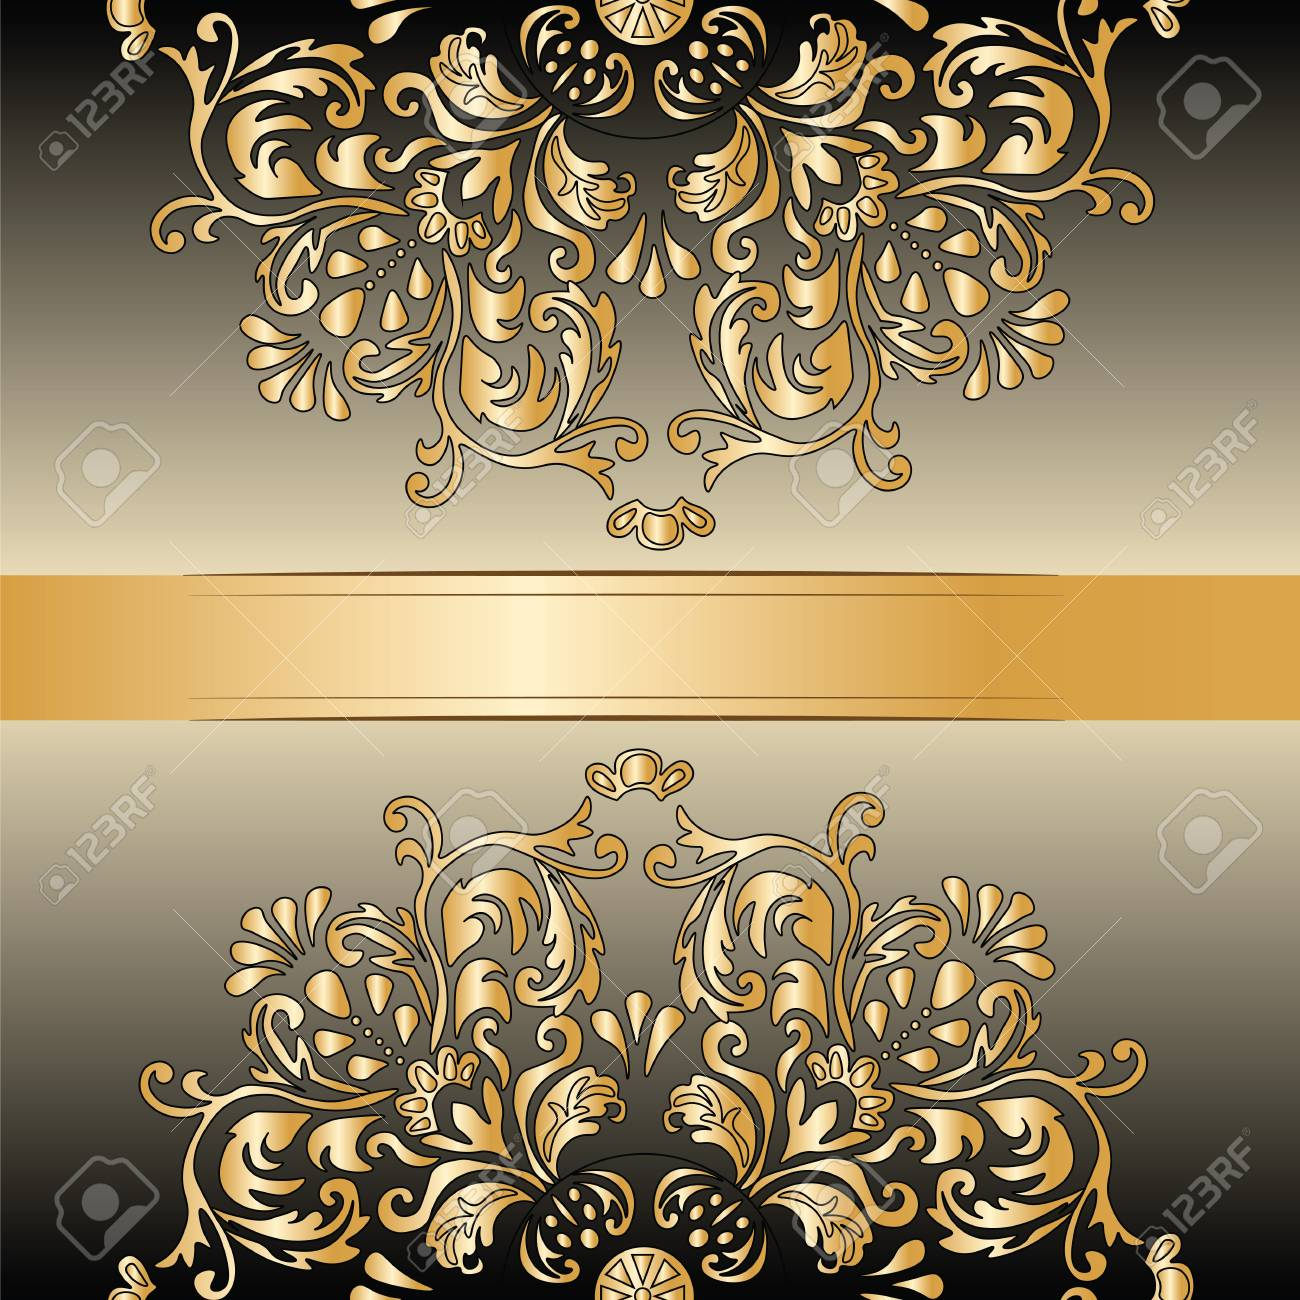 Golden royal classic ornament damask invitation vector royalty free golden royal classic ornament damask invitation vector stock vector 50048291 stopboris Image collections